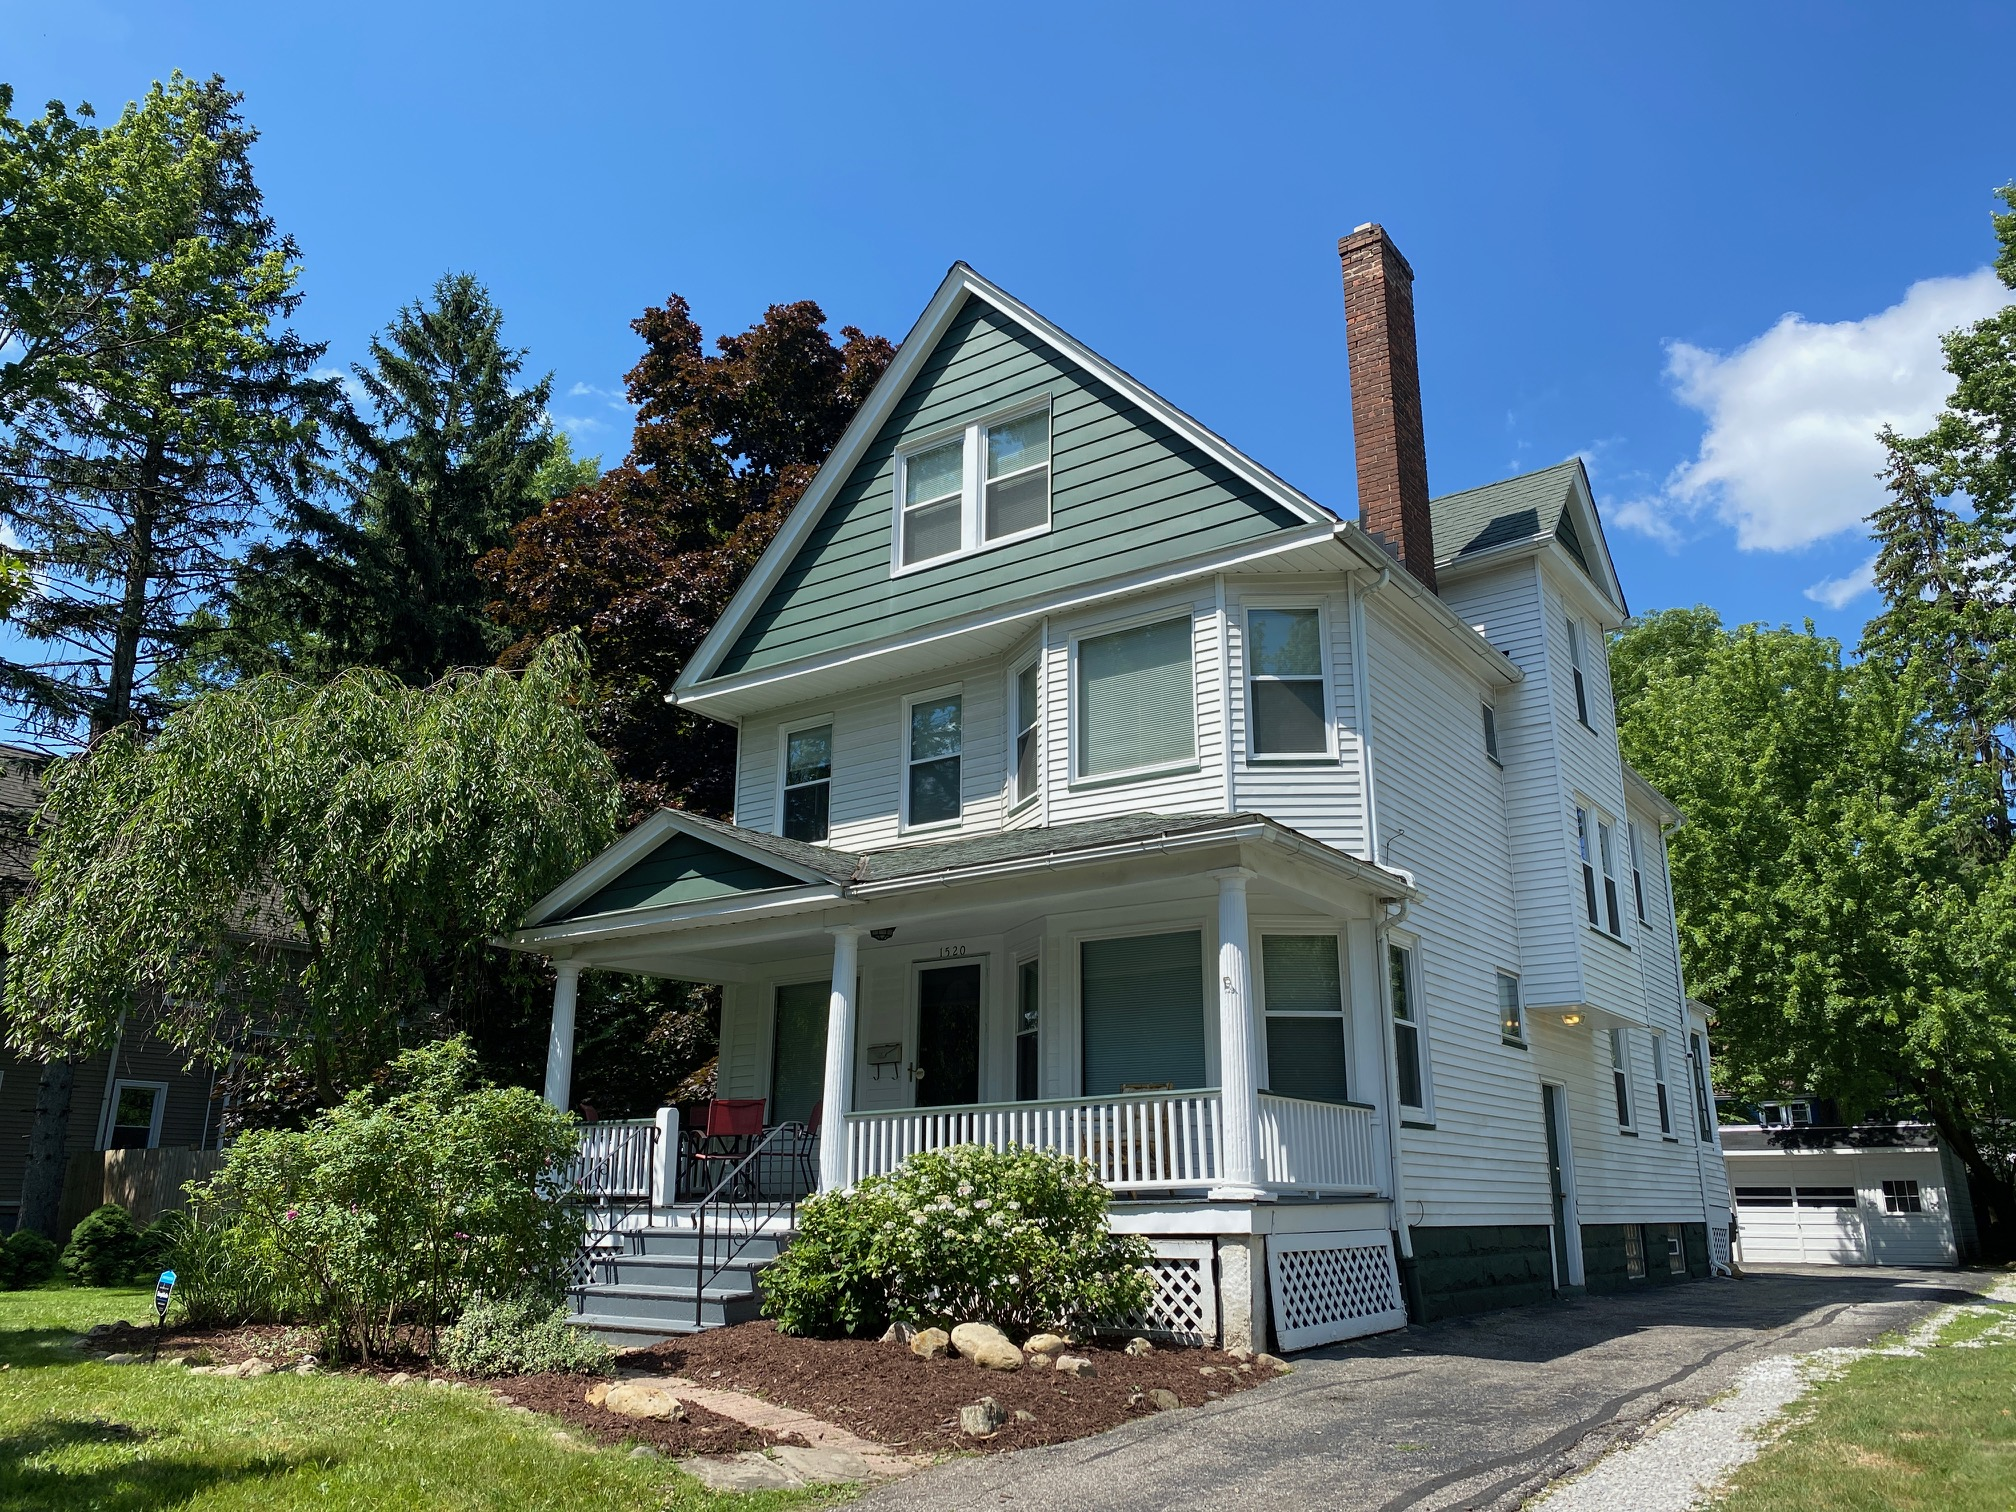 Cleveland Heights Rental Home – Maple Road 5 Bedroom